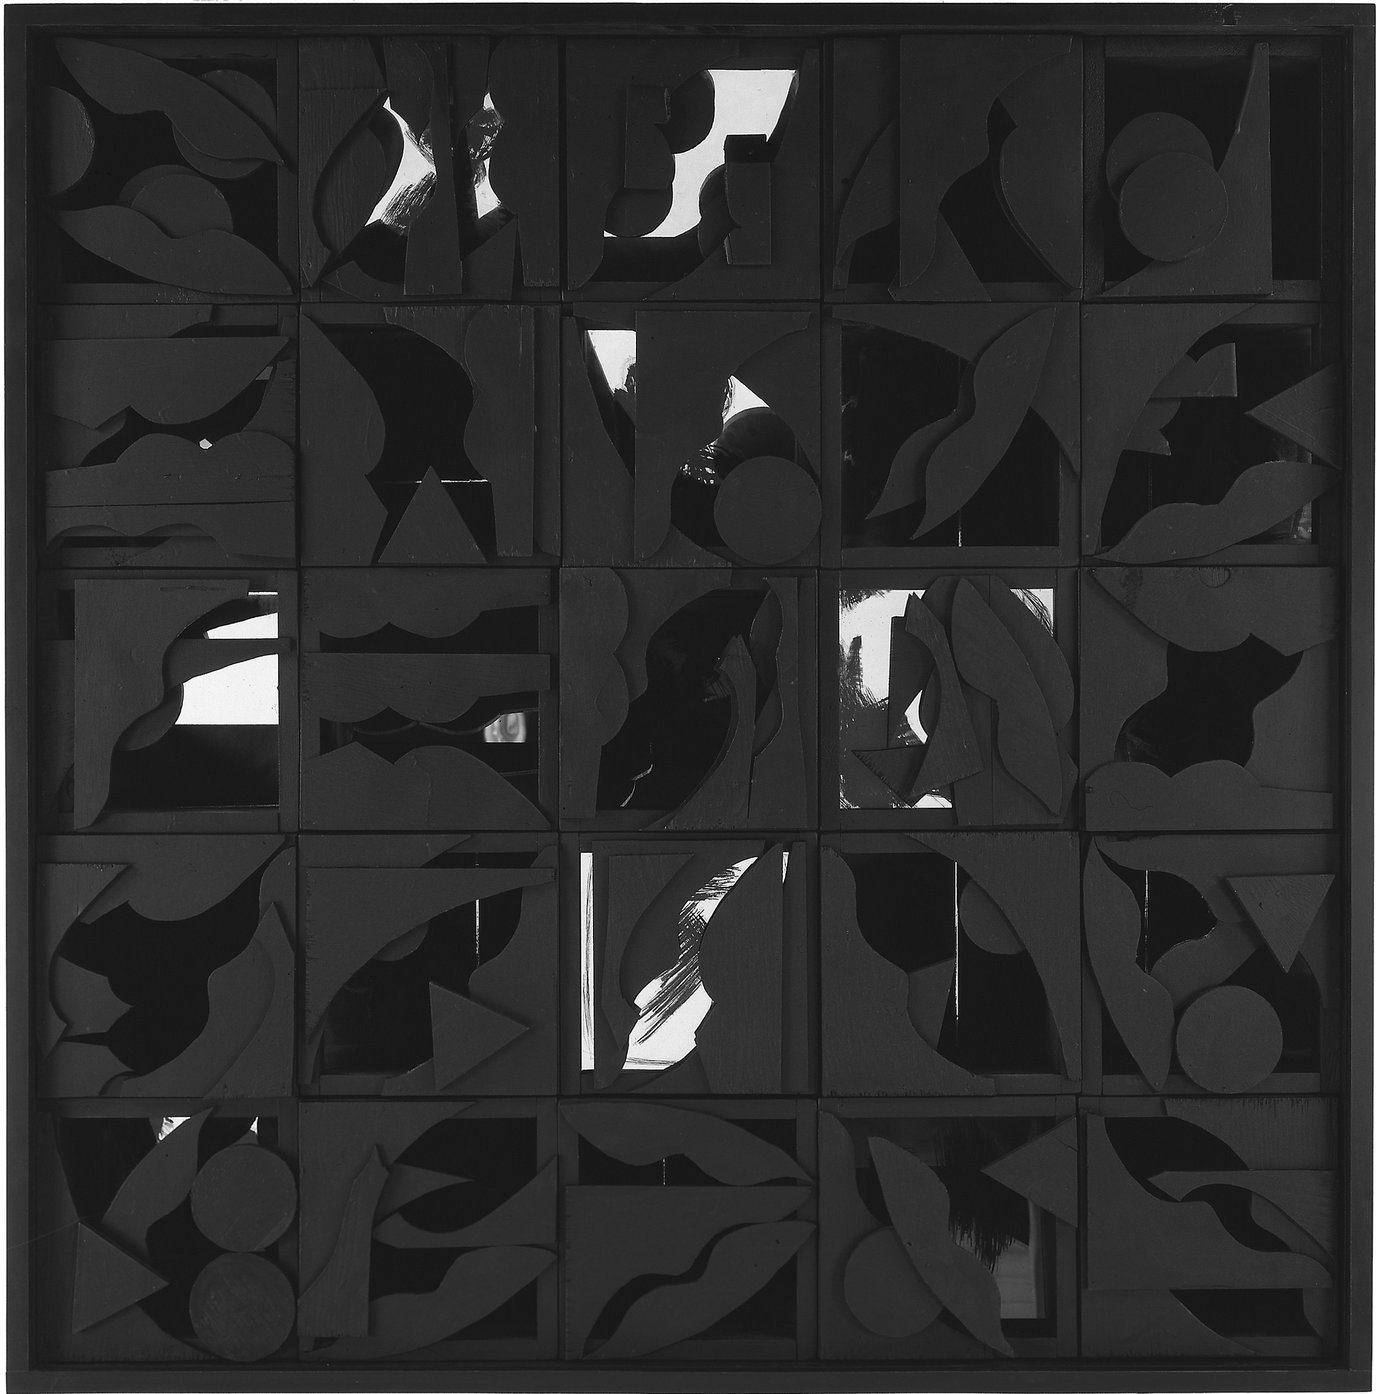 ", 1964. wood painted black with mirror, 49-3/4"" x 49-3/4"" x 10"" (126.4 cm x 126.4 cm x 25.4 cm)."